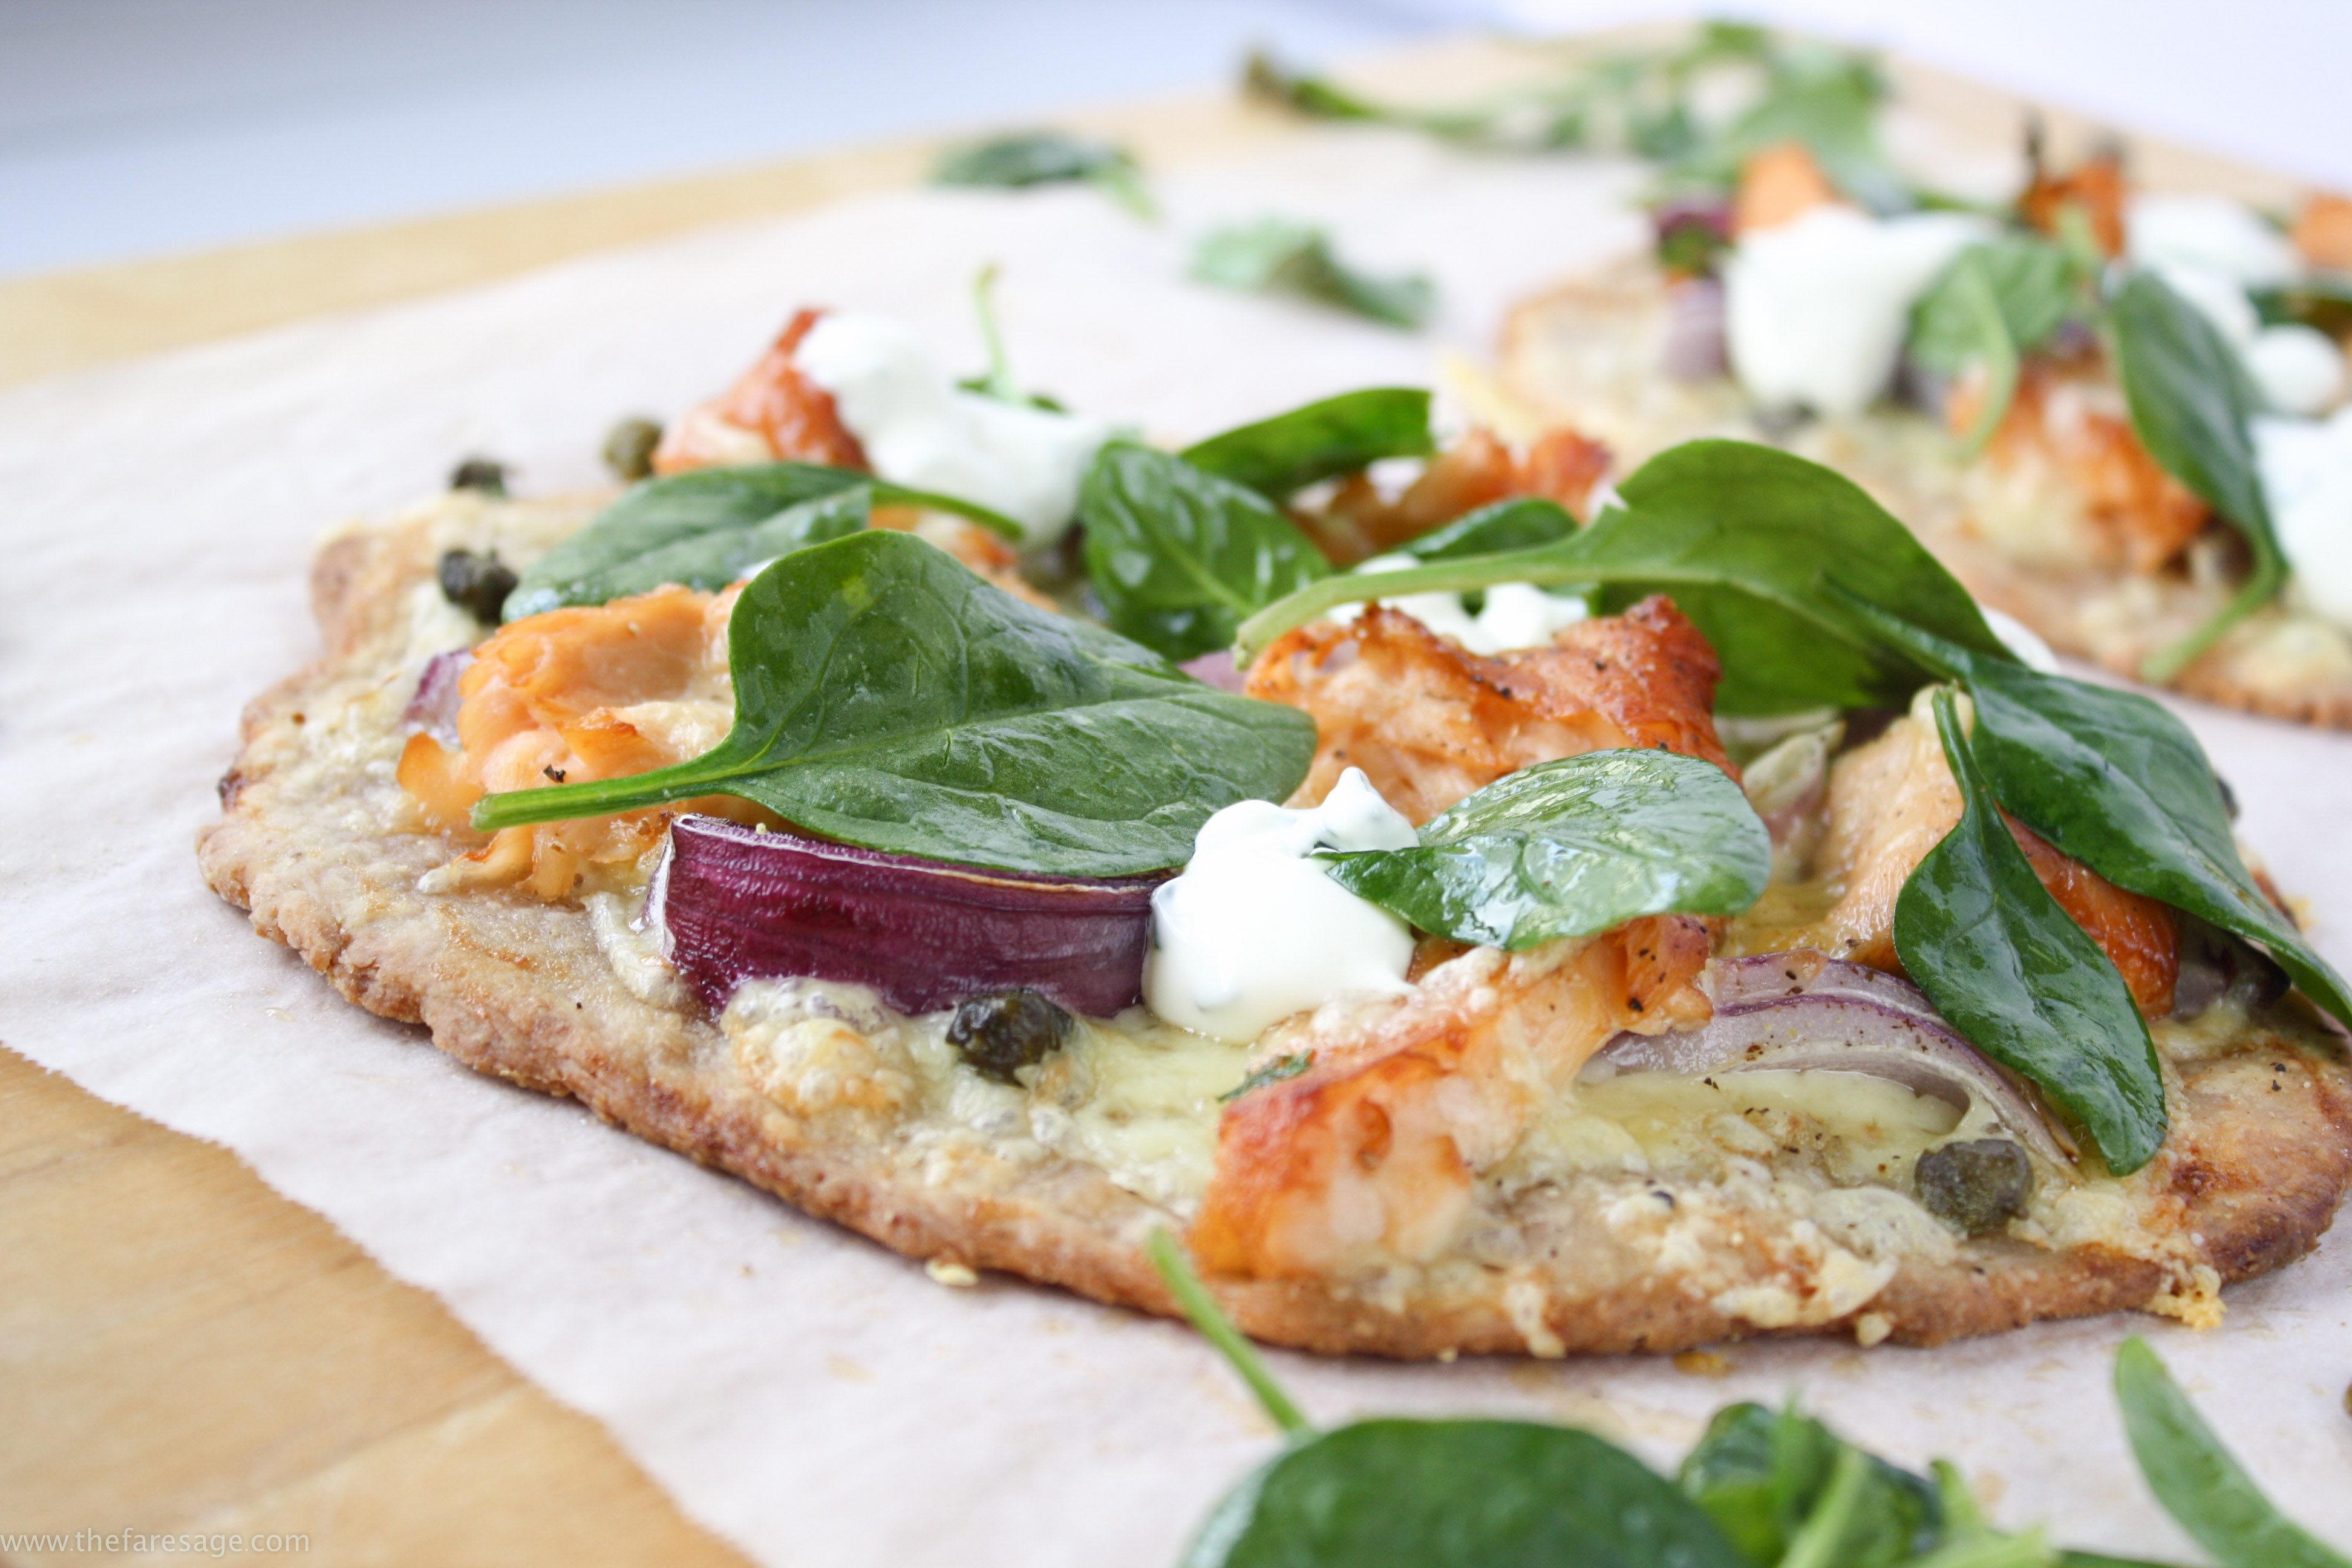 Flatbread with smoked salmon and capers